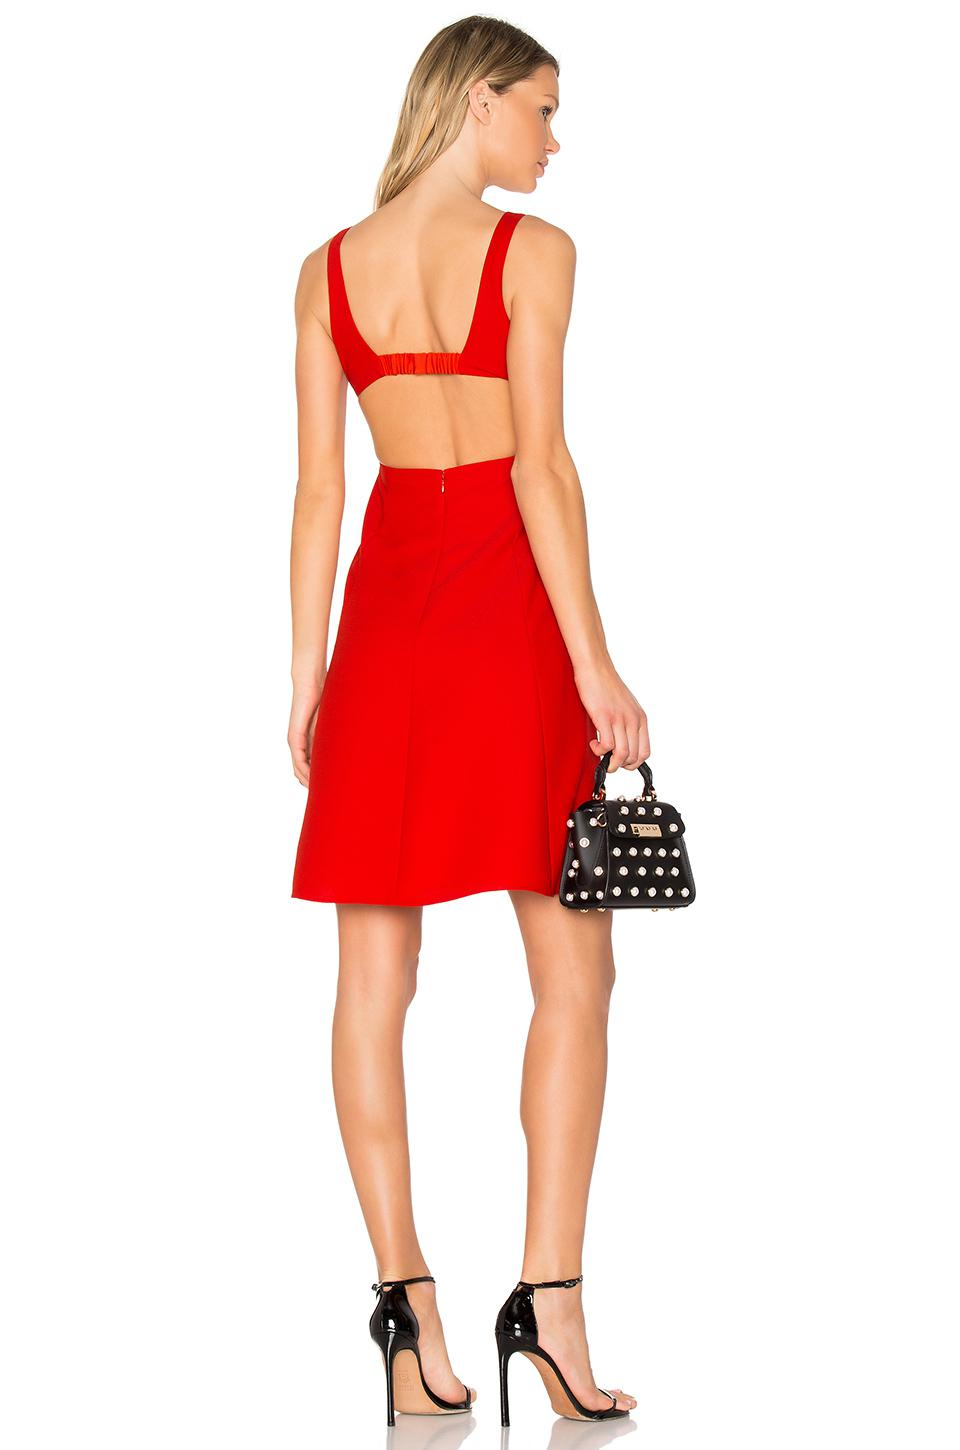 477f5c30de Lyst - T By Alexander Wang Square Neck Dress in Red